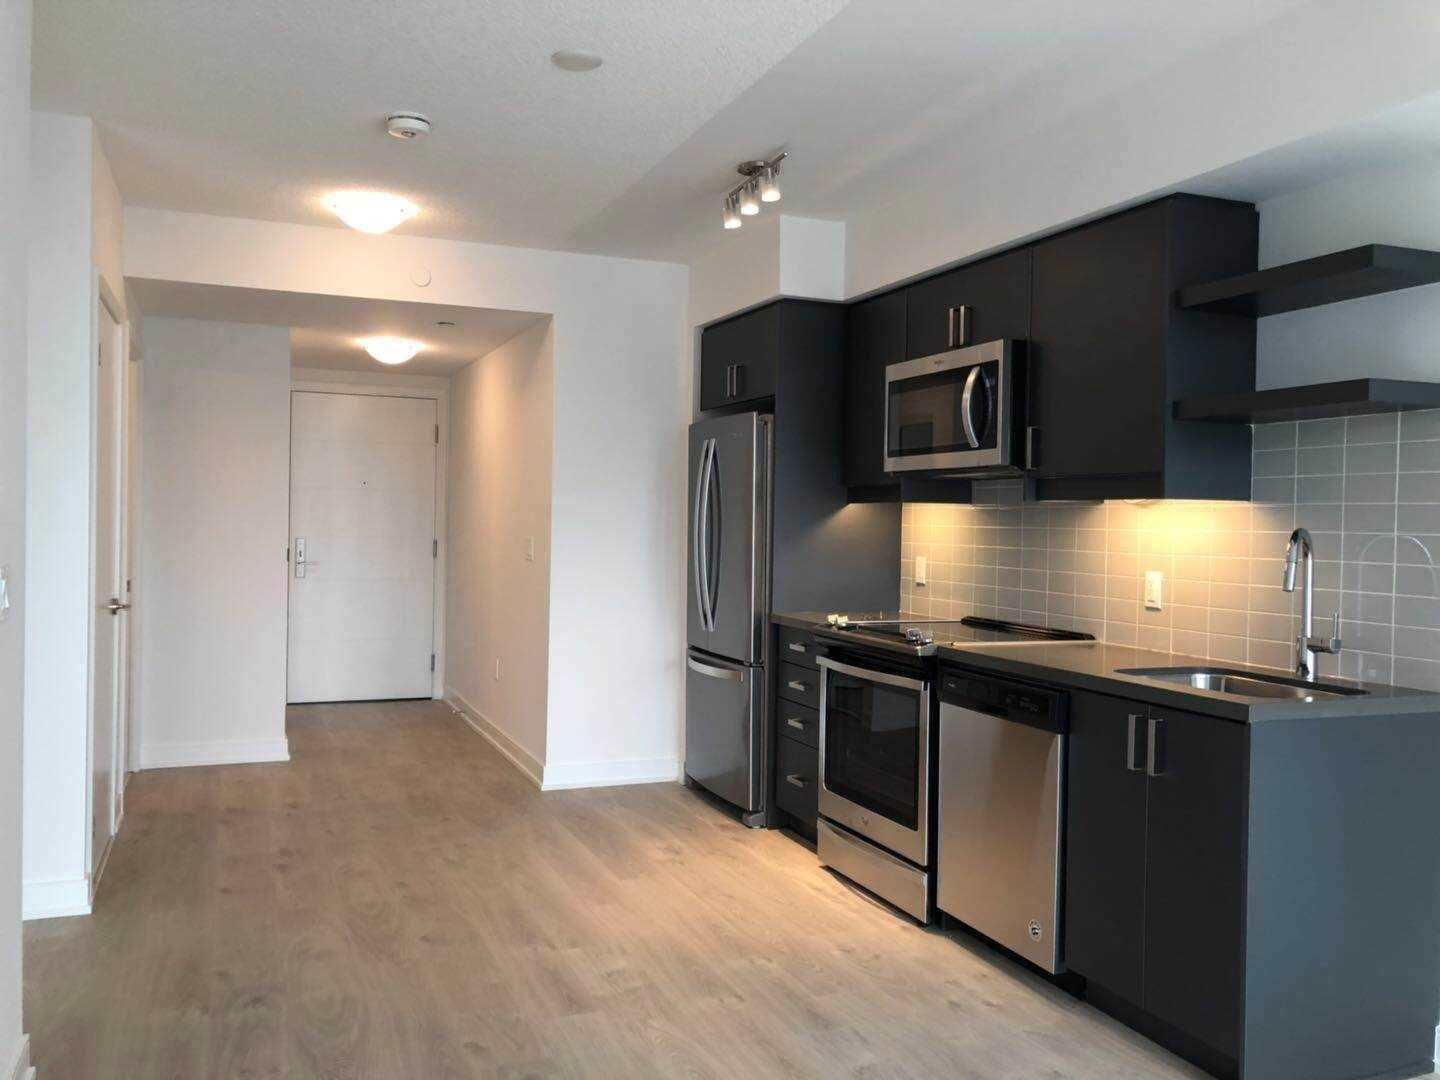 50 Wellesley St E, unit 2109 for rent in Toronto - image #2